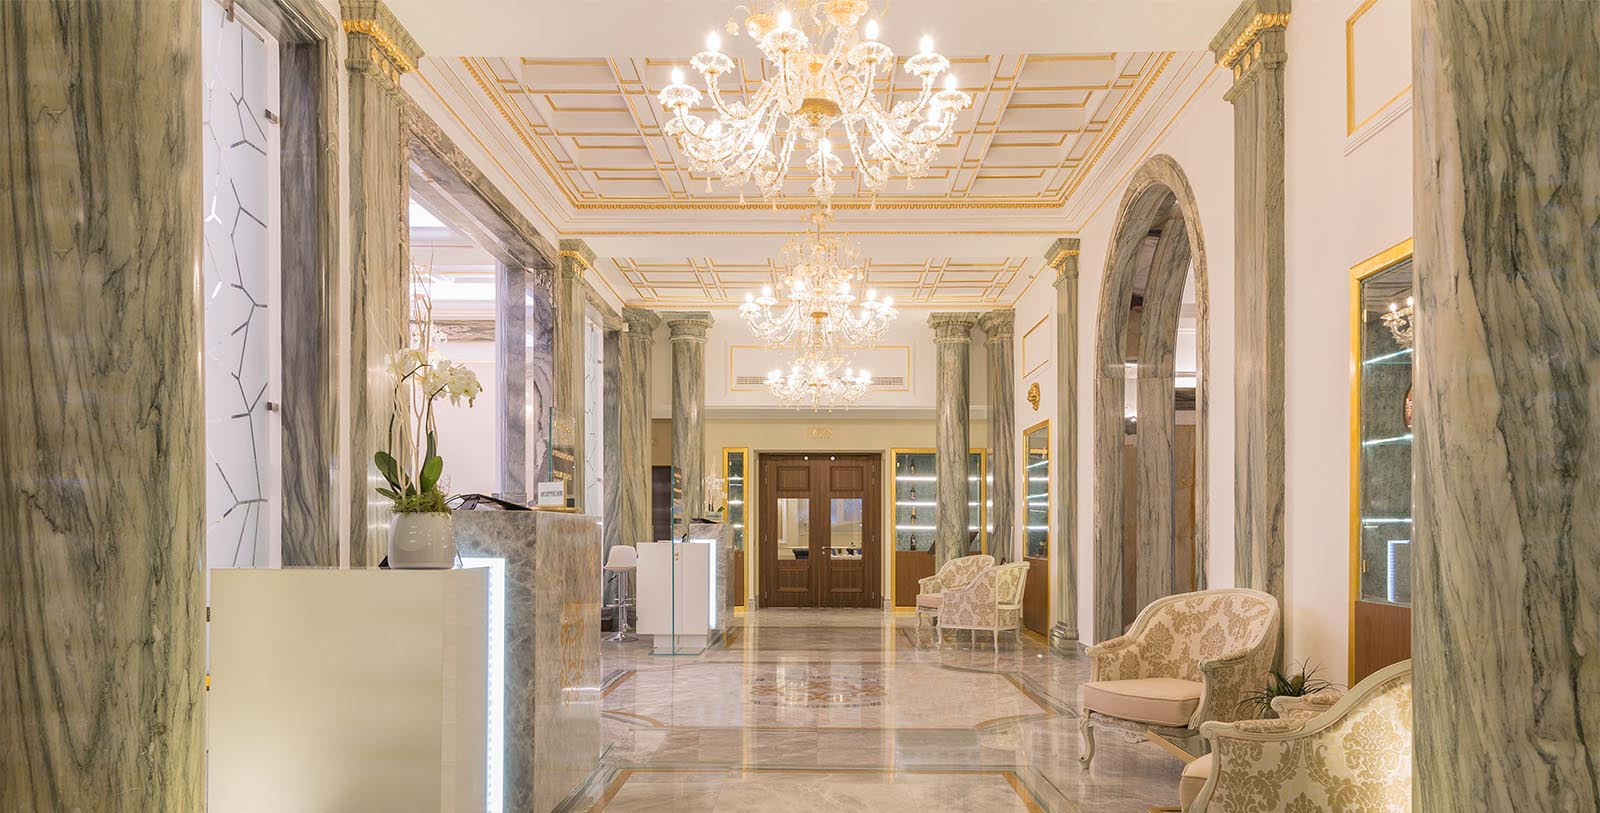 Image of lobby interior Aleph Rome Hotel, Curio Collection by Hilton, 1930, Member of Historic Hotels Worldwide, in Rome, Italy, Discover